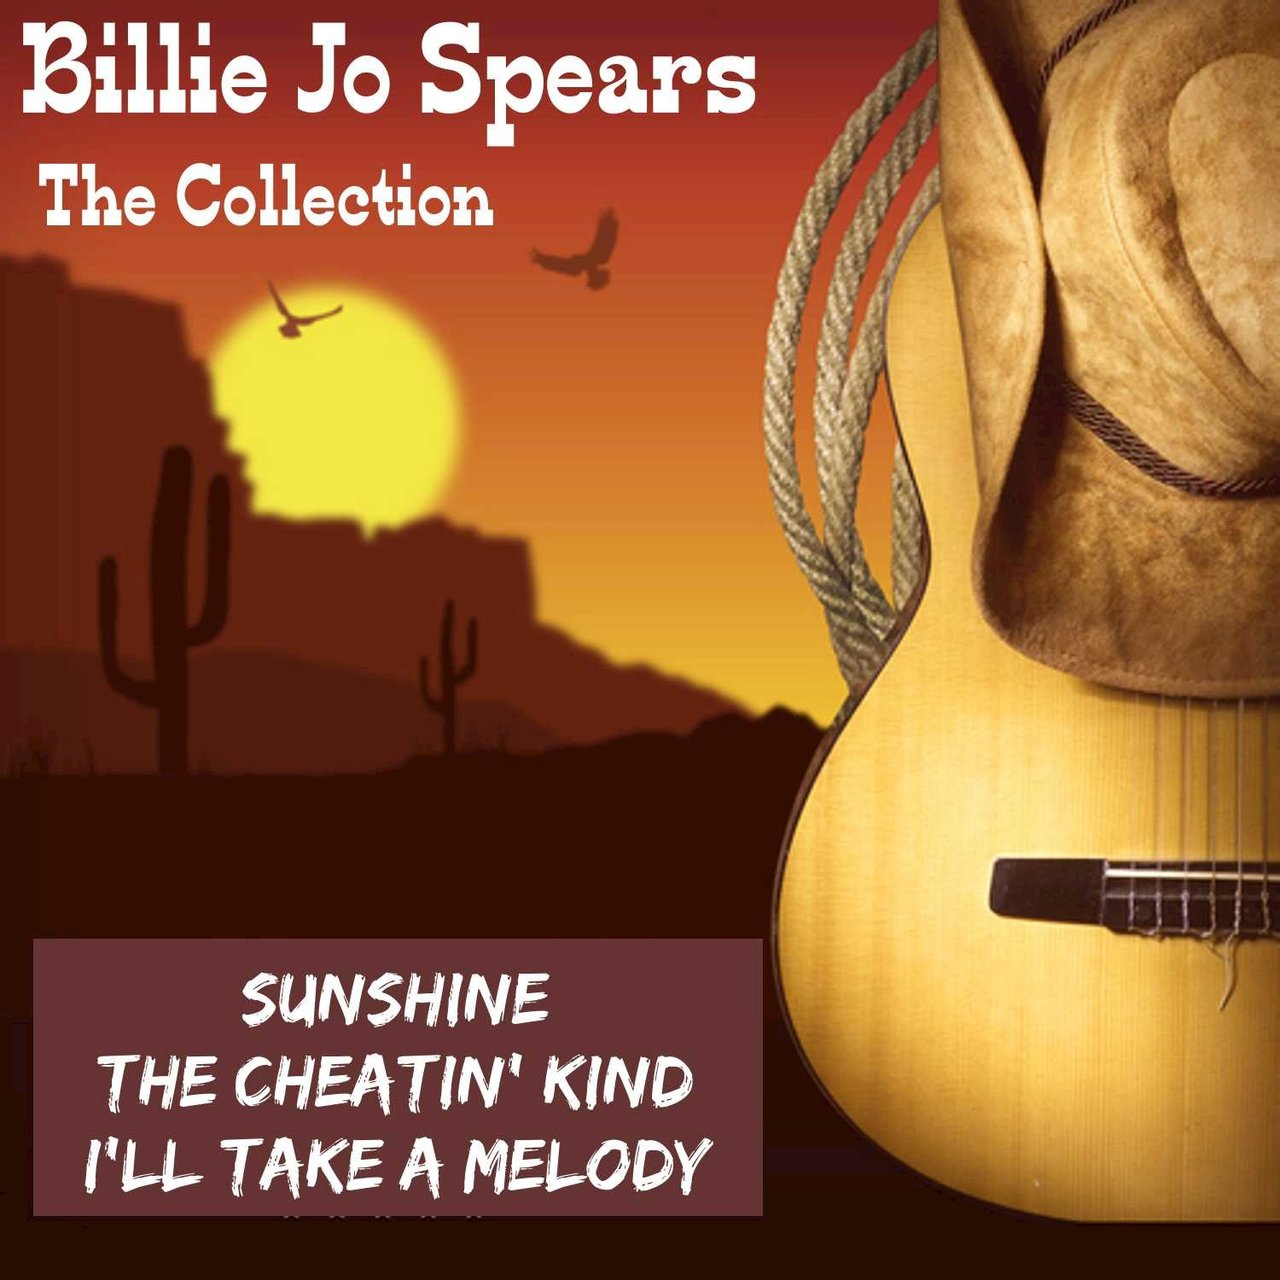 Billie Jo Spears: The Collection